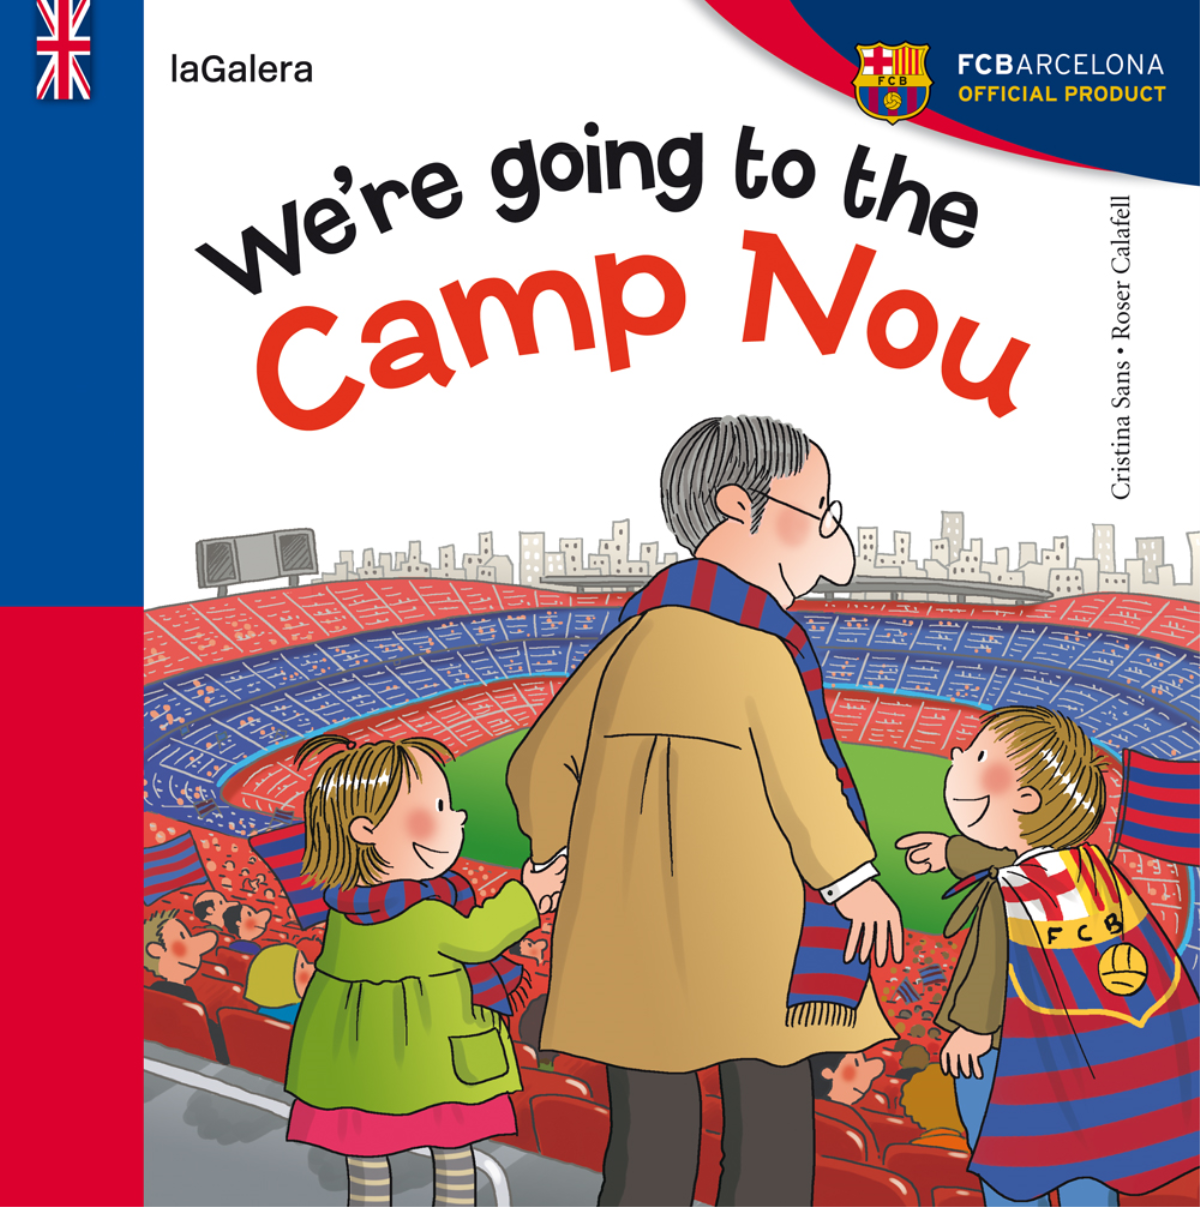 We're going to the Camp Nou